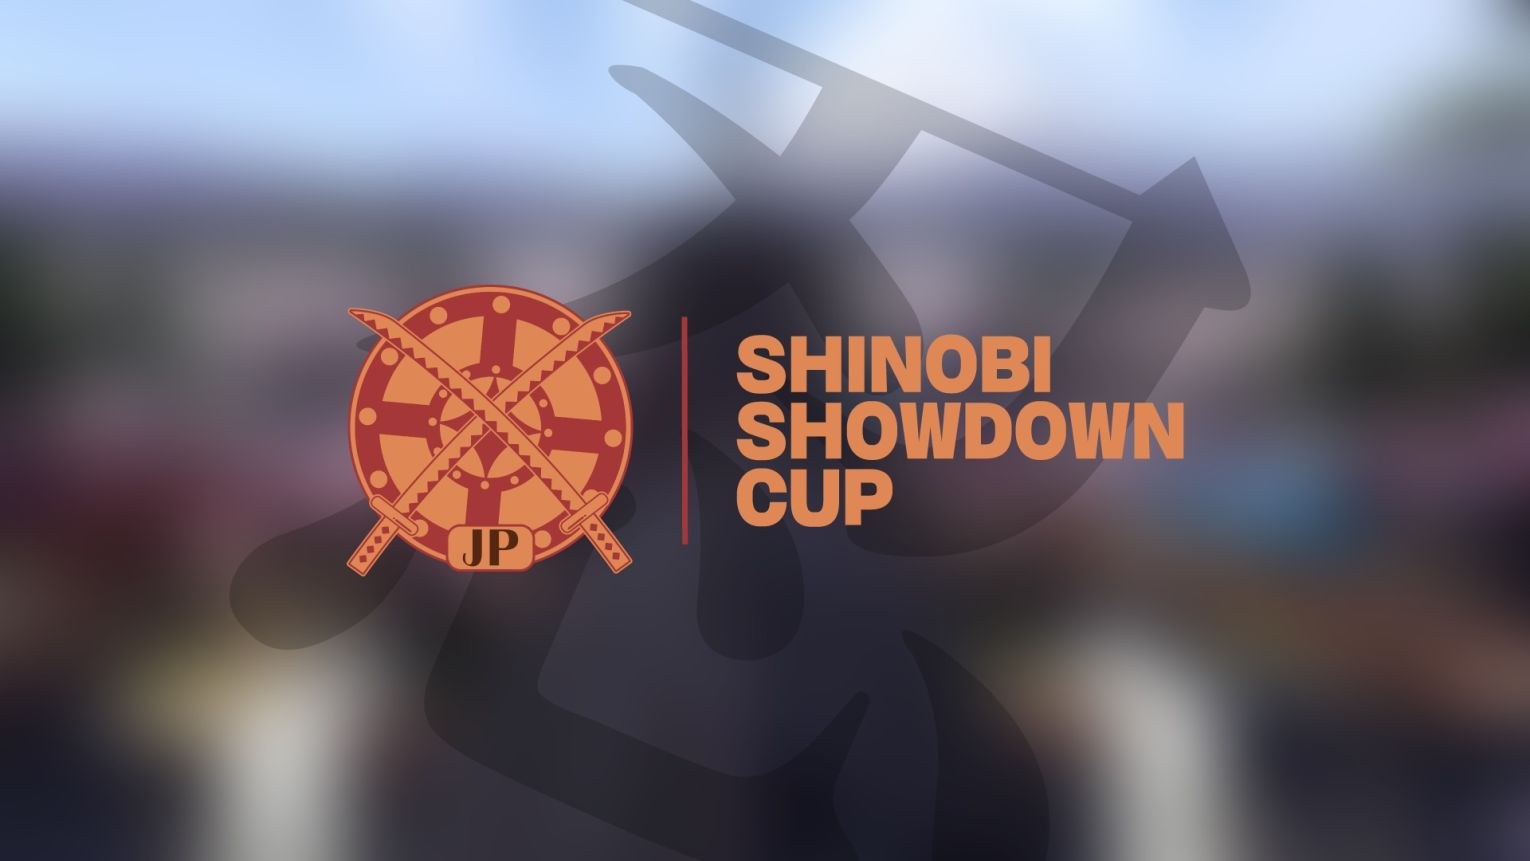 JP/Asia] Shinobi Showdown cup - match tf